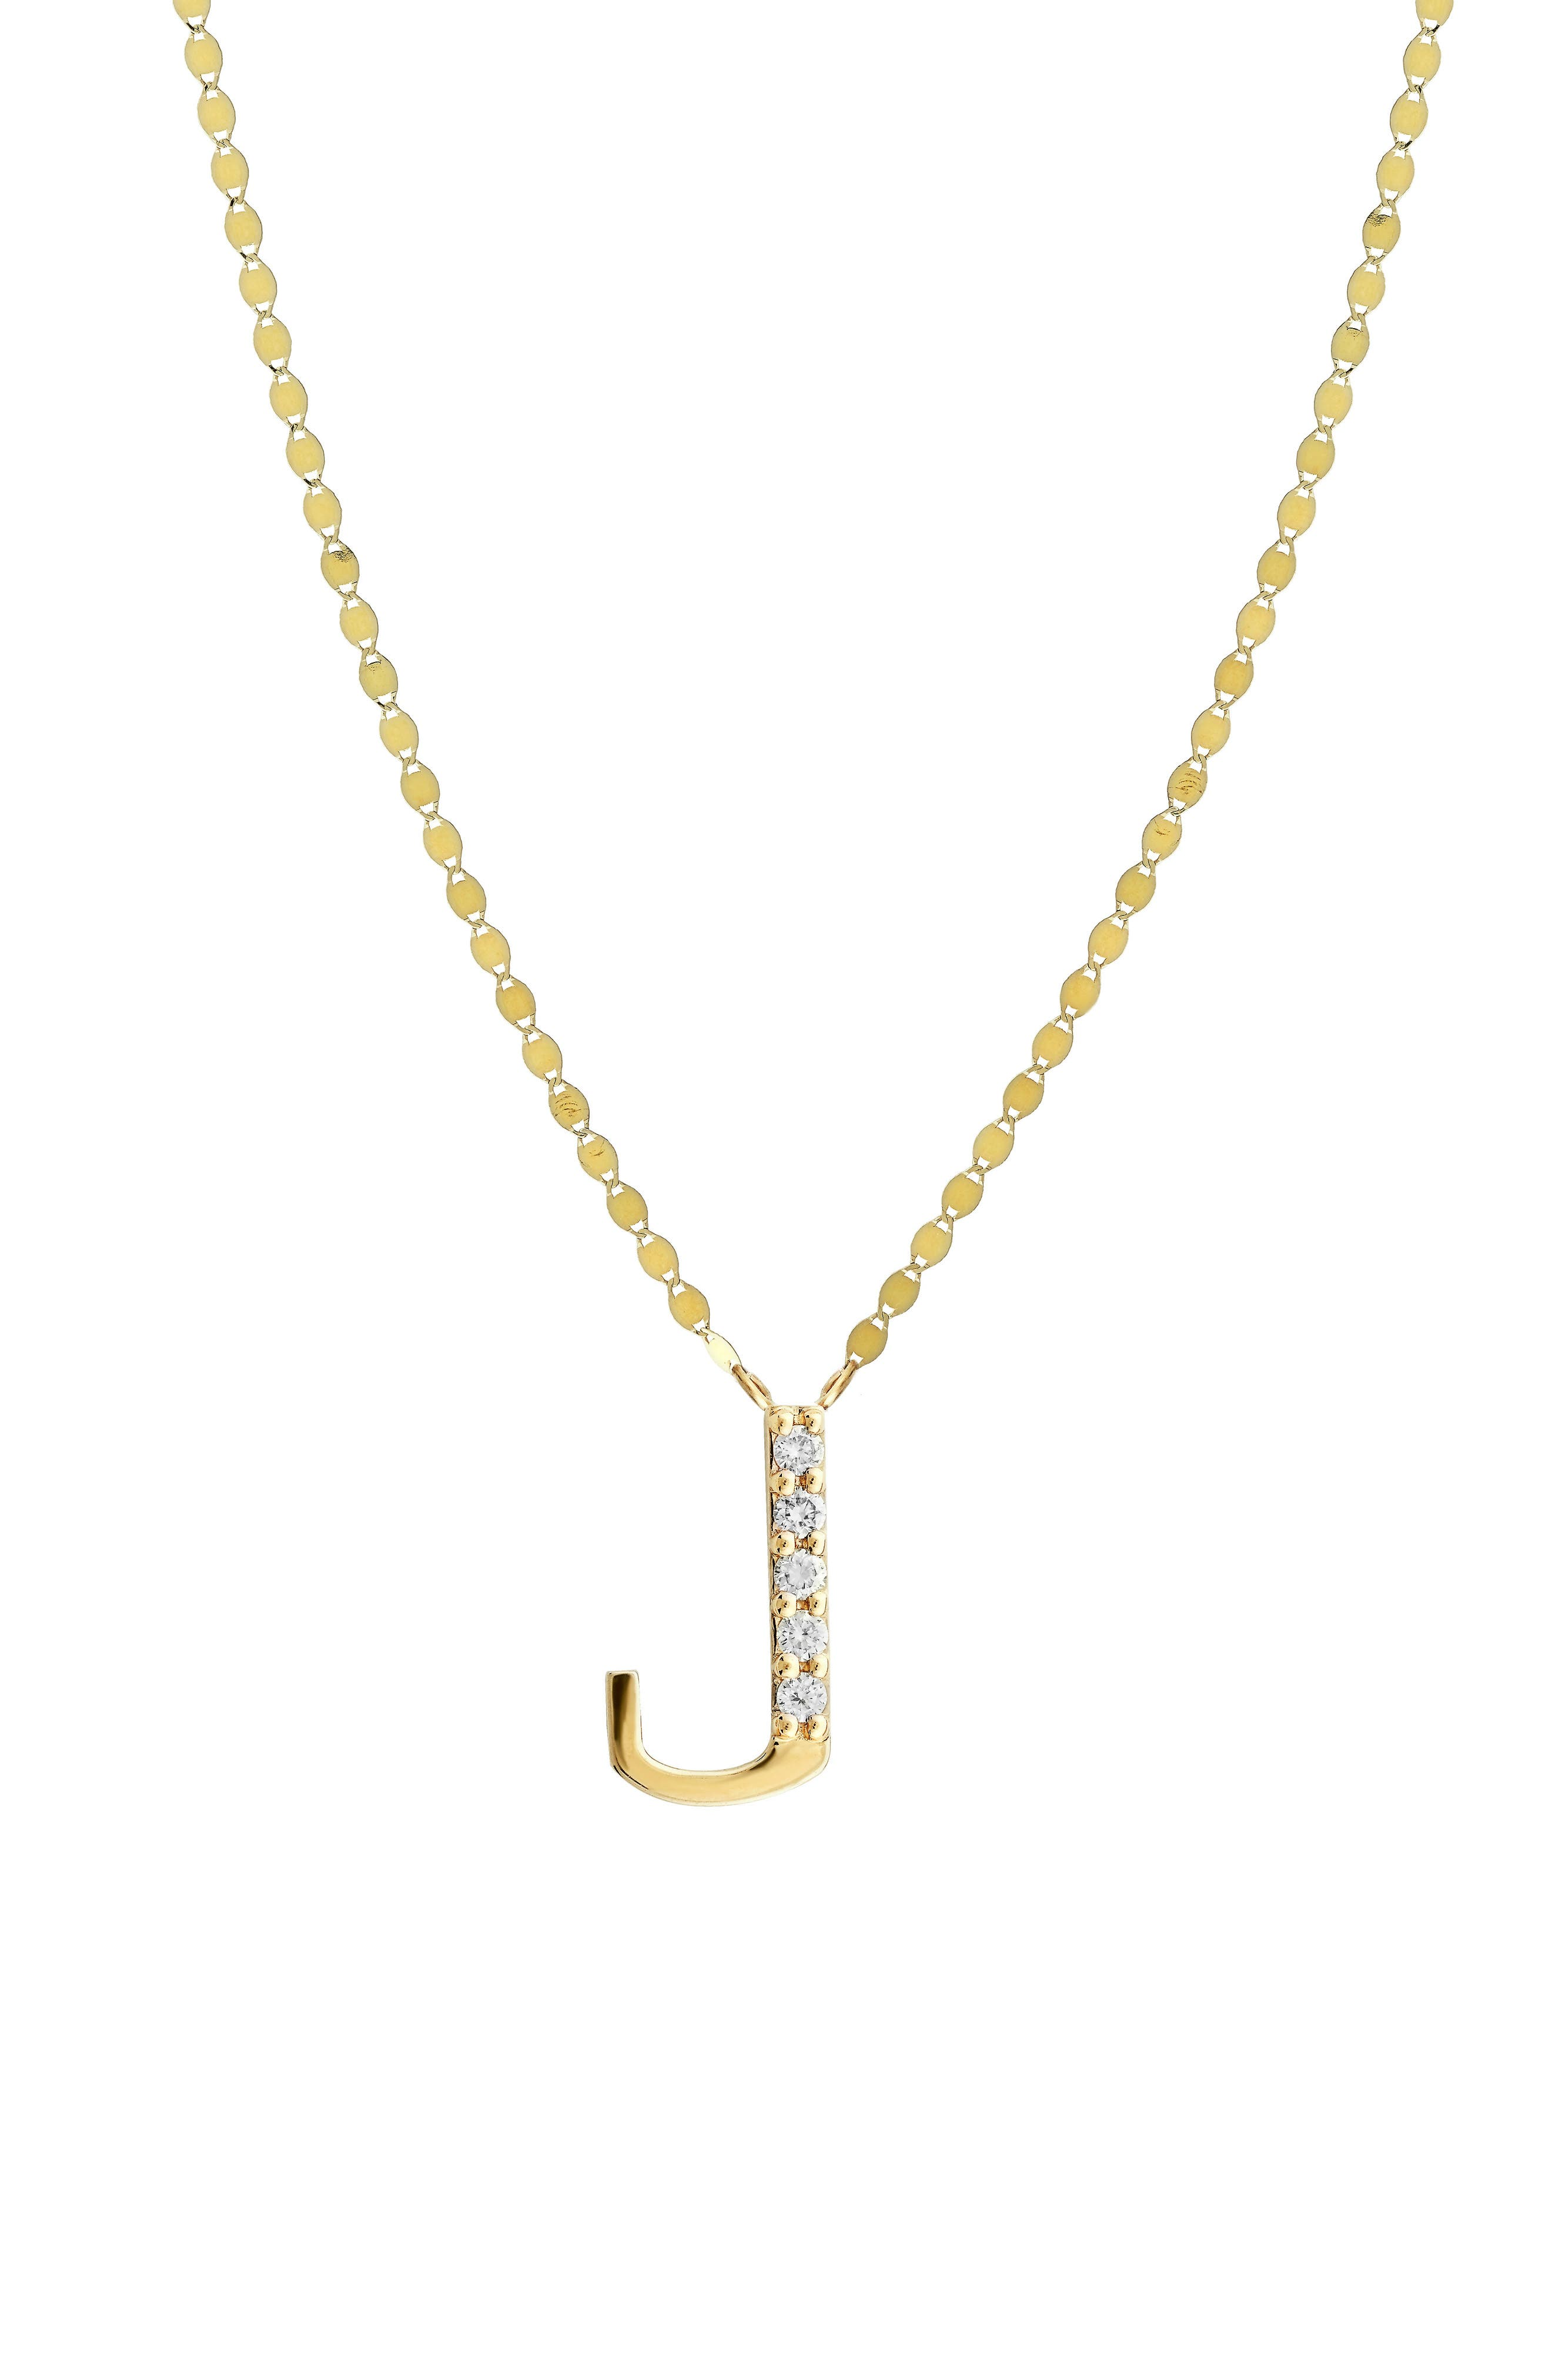 Initial Pendant Necklace,                         Main,                         color, Yellow Gold- J